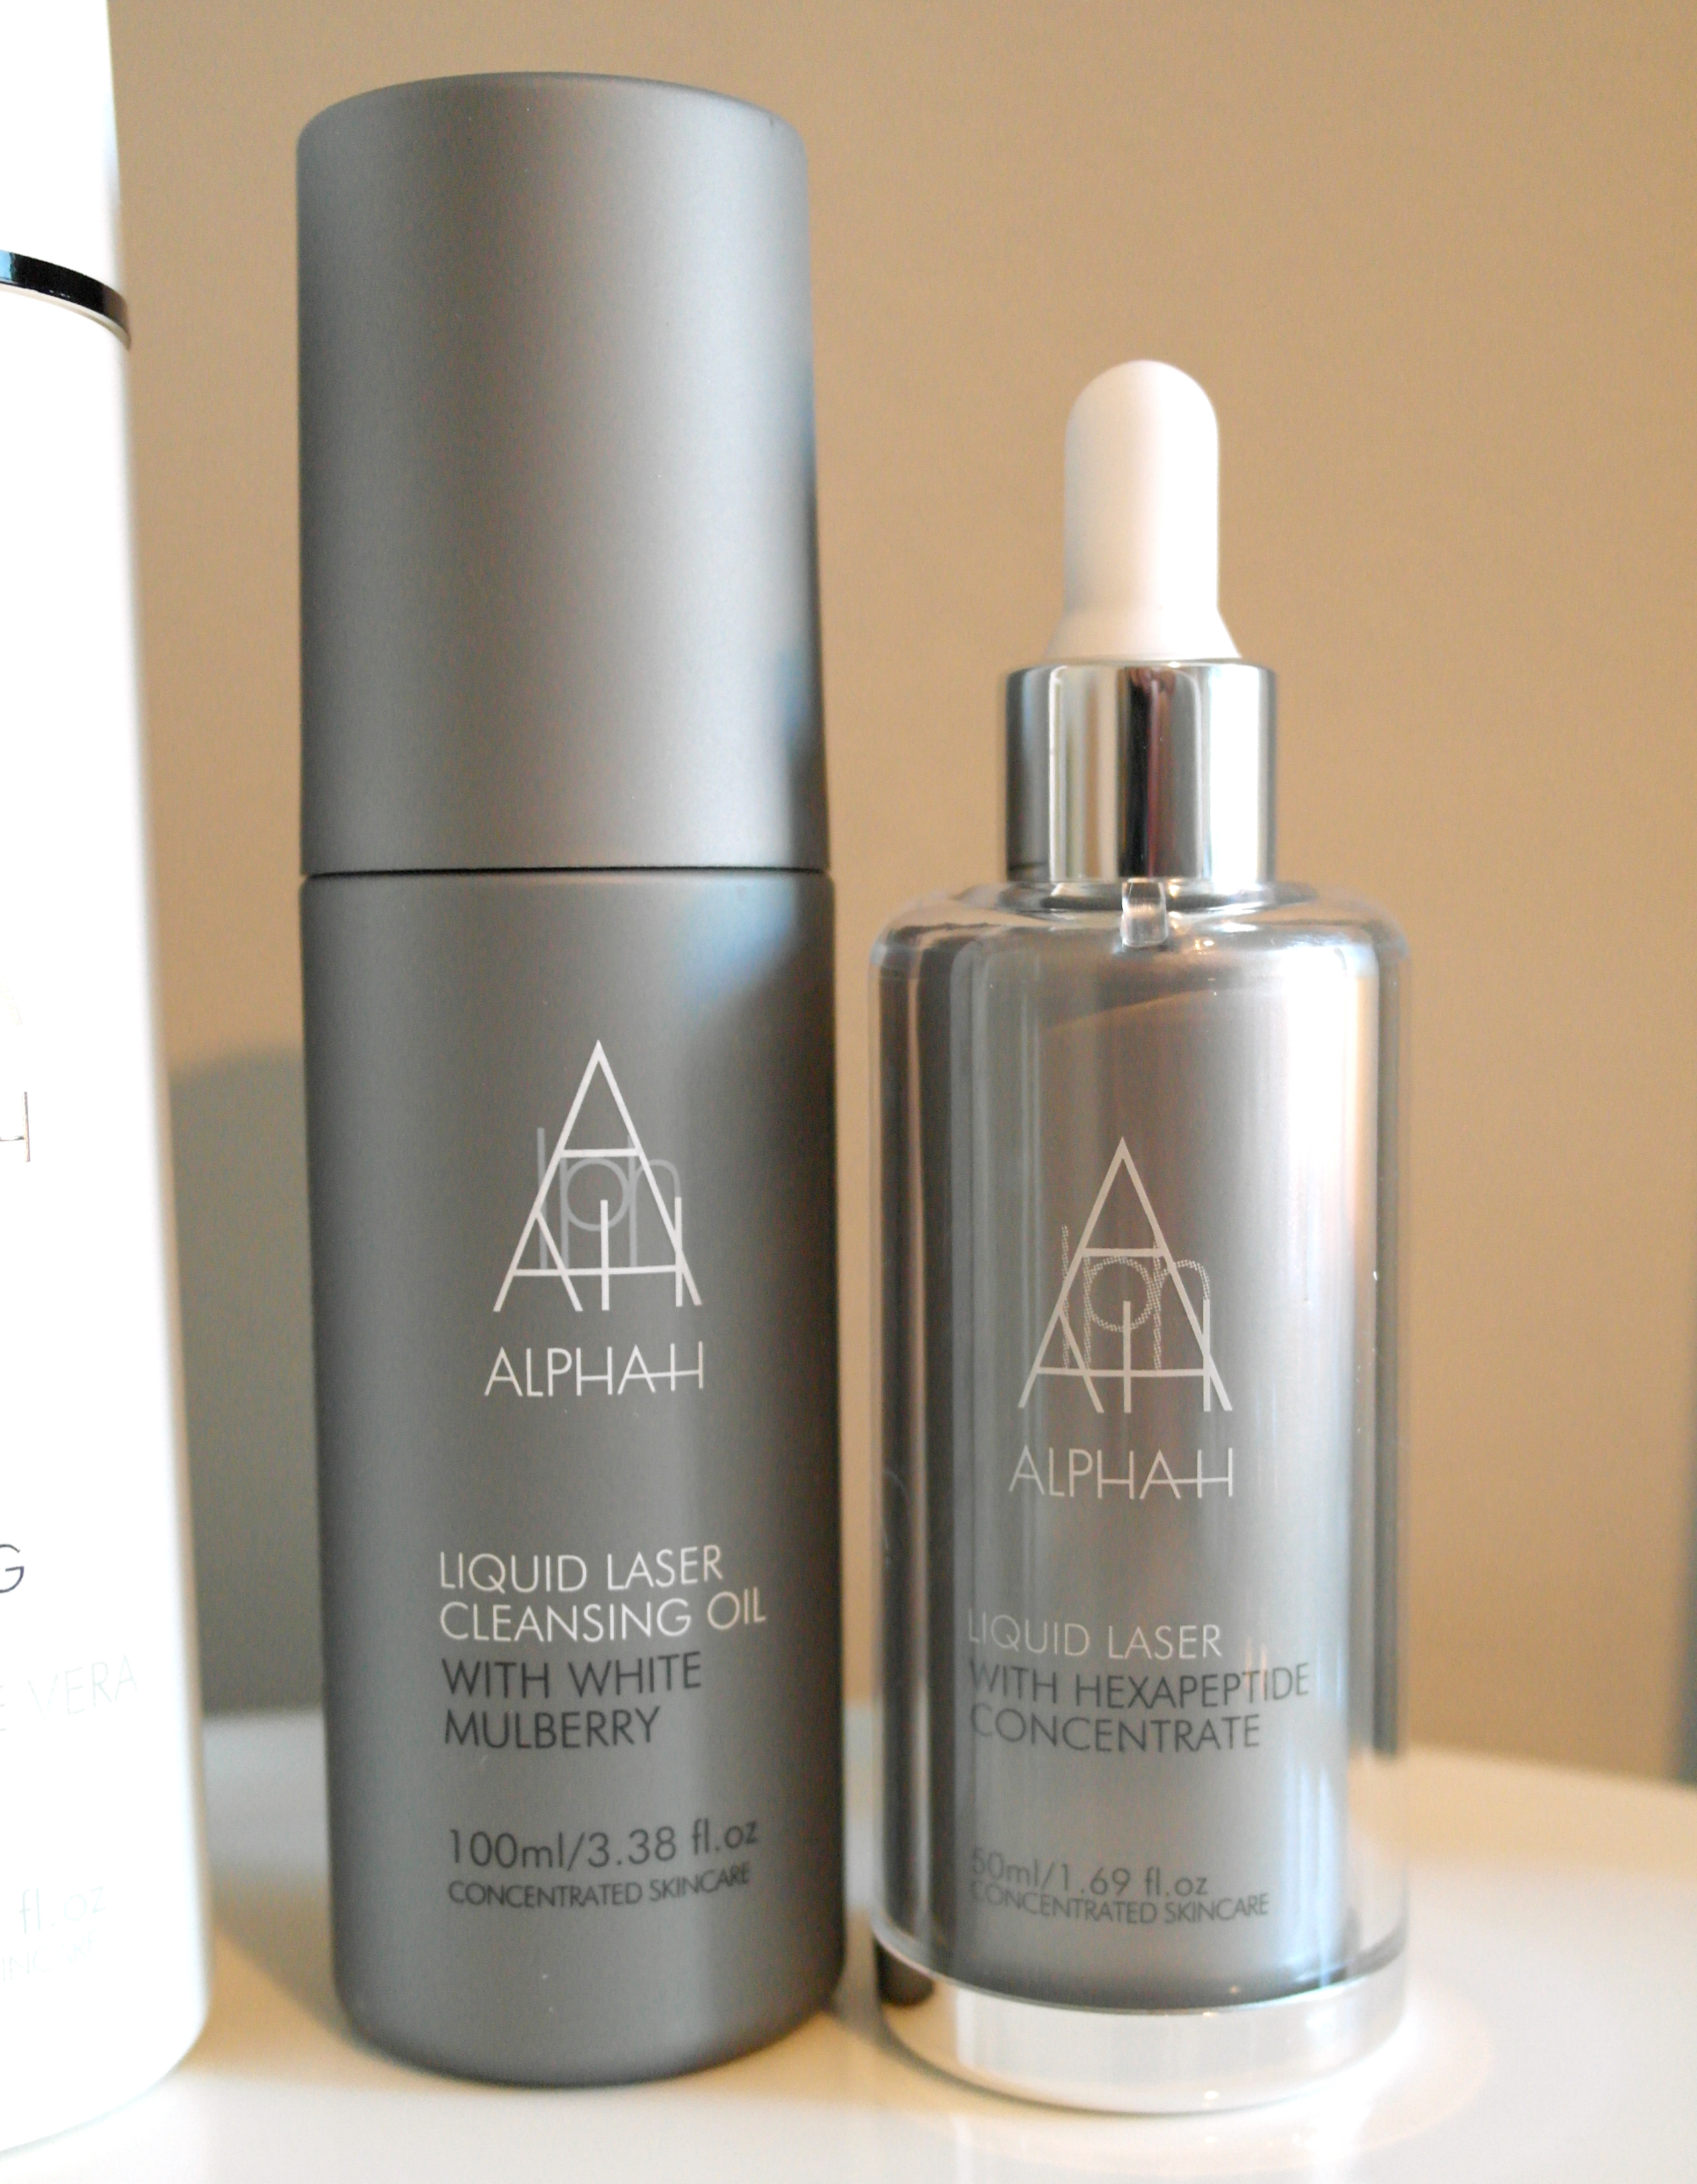 Alpha H Liquid Laser Cleansing Oil & Liquid Laser Serum